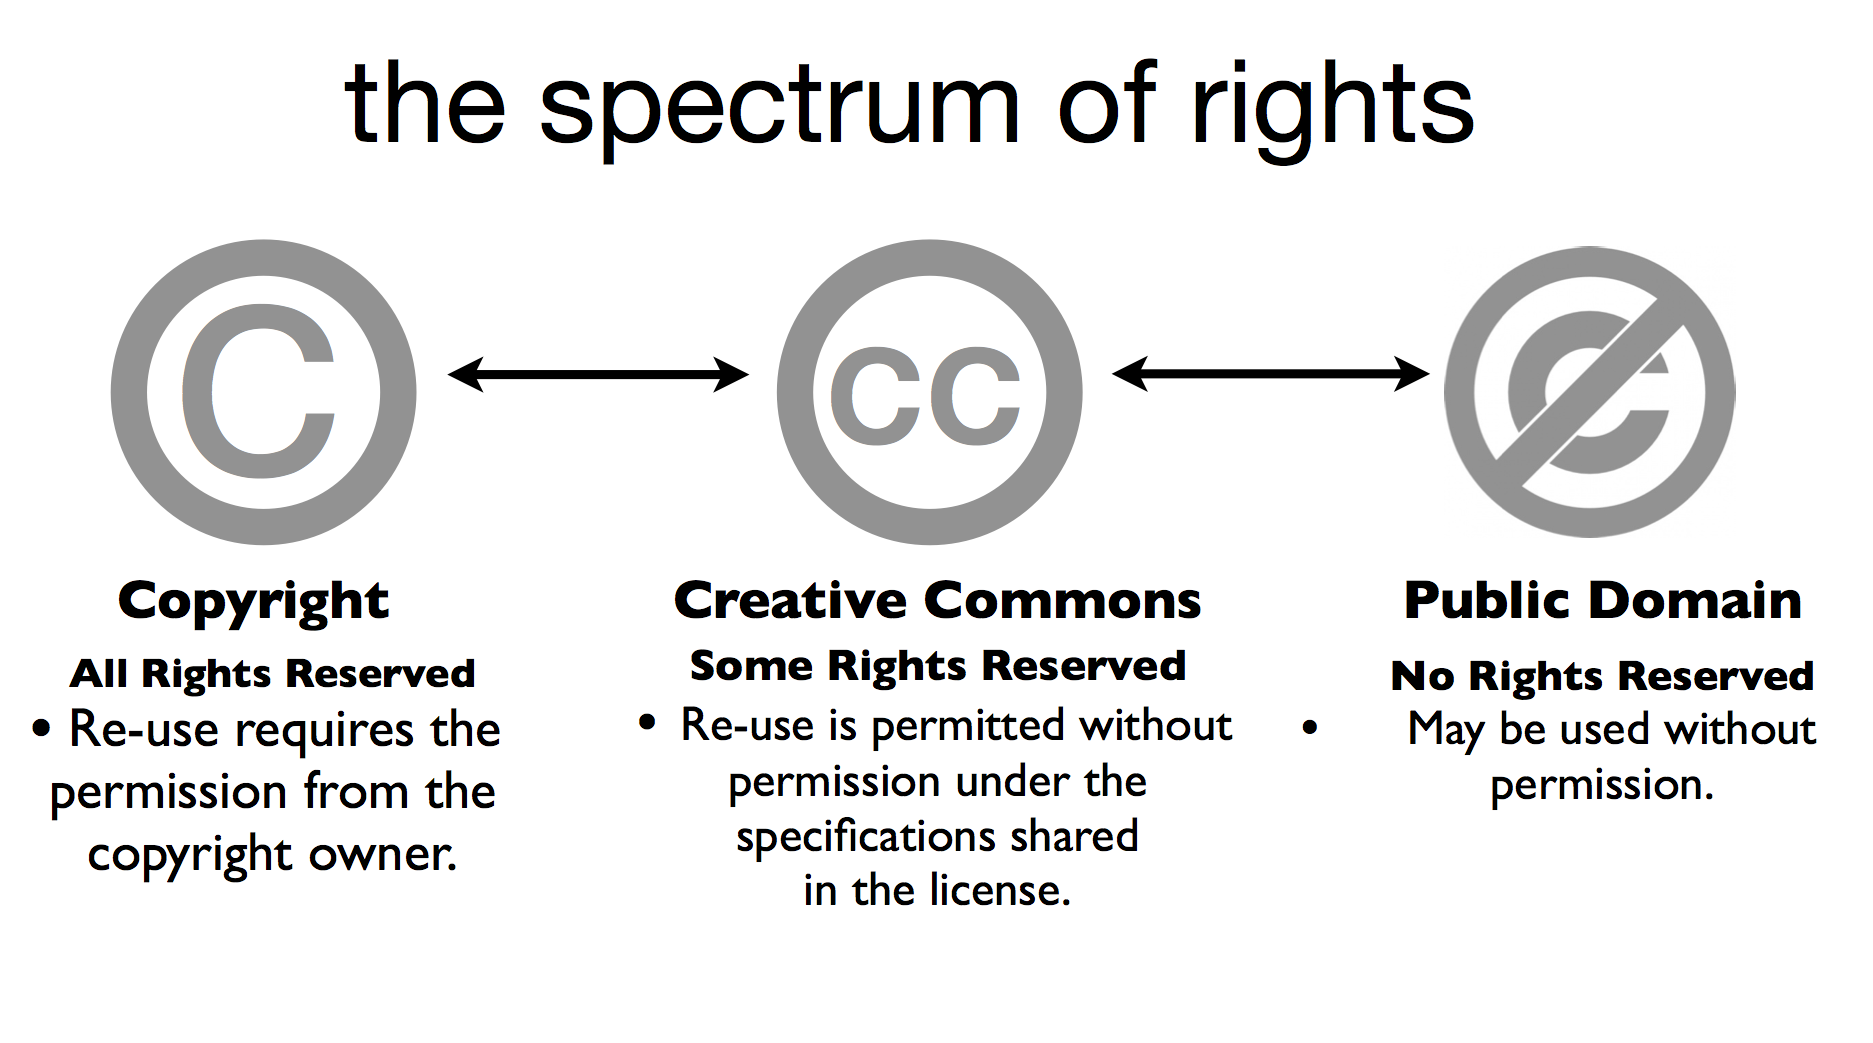 a specturm of rights